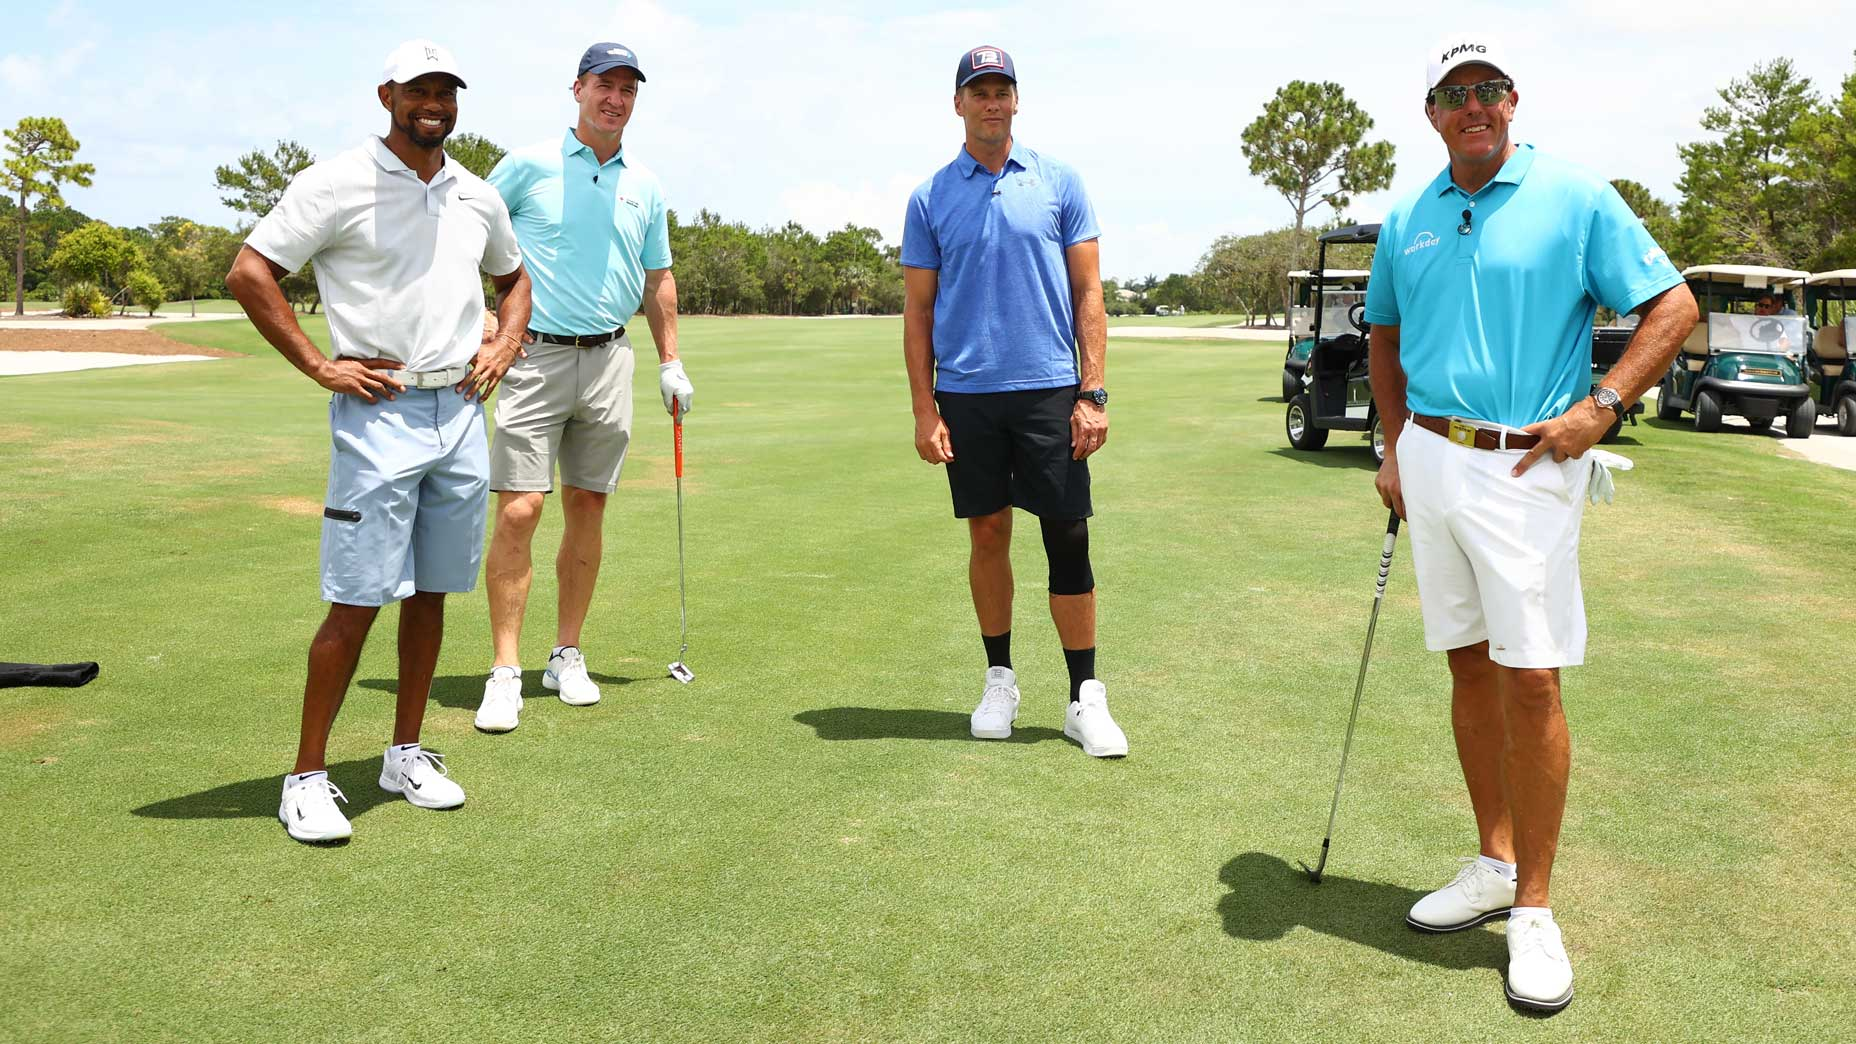 Tiger Woods, Peyton Manning, Tom Brady and Phil Mickelson at Medalist Golf Club.